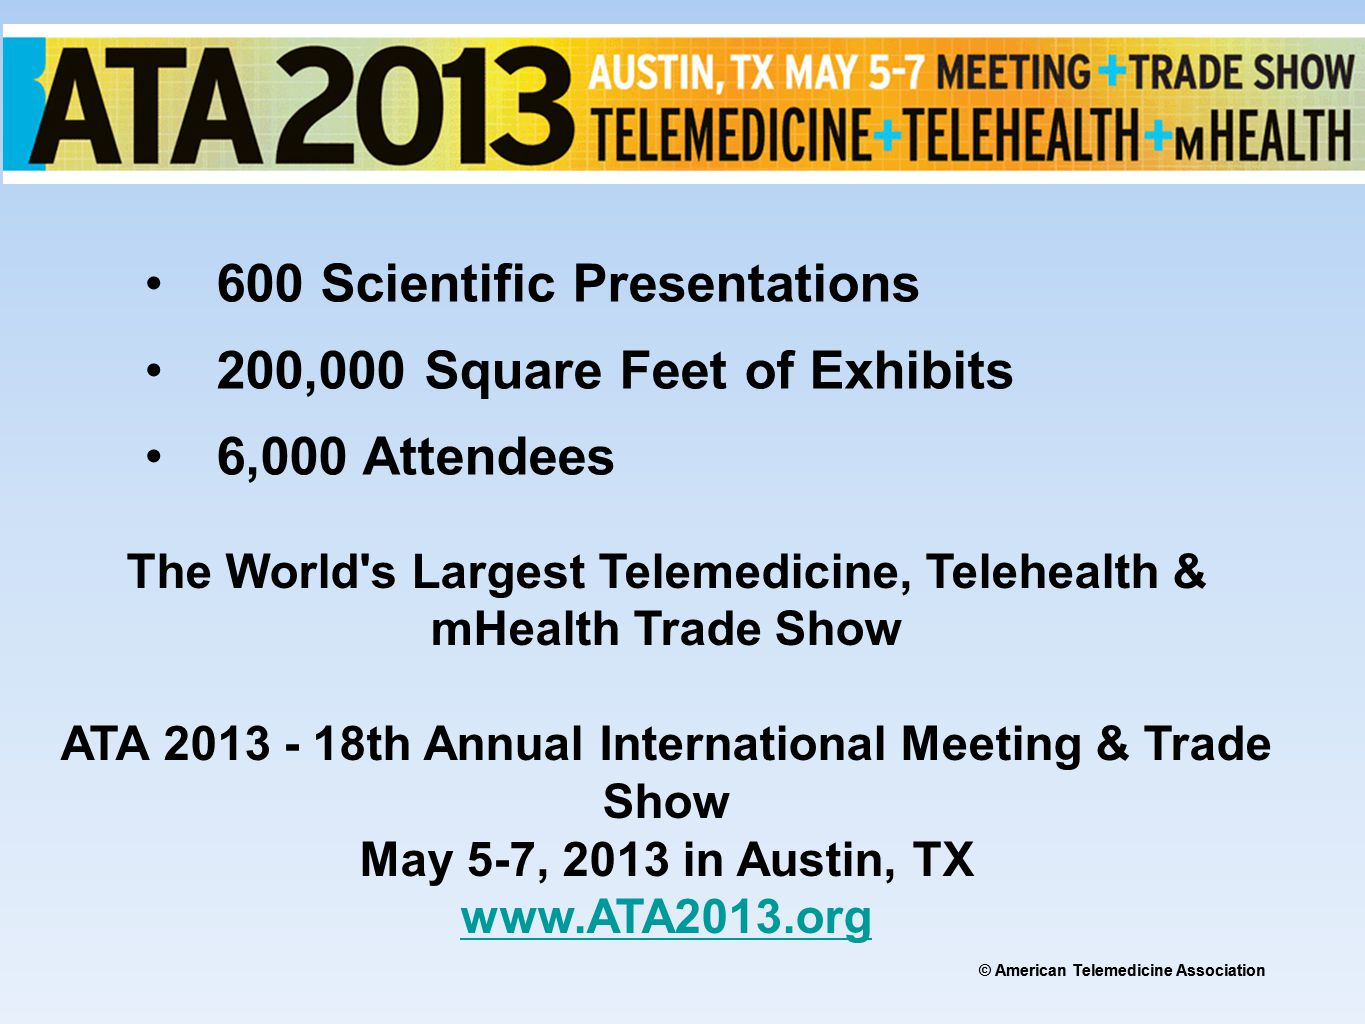 © American Telemedicine Association 600 Scientific Presentations 200,000 Square Feet of Exhibits 6,000 Attendees The World s Largest Telemedicine, Telehealth & mHealth Trade Show ATA 2013 - 18th Annual International Meeting & Trade Show May 5-7, 2013 in Austin, TX www.ATA2013.org www.ATA2013.org